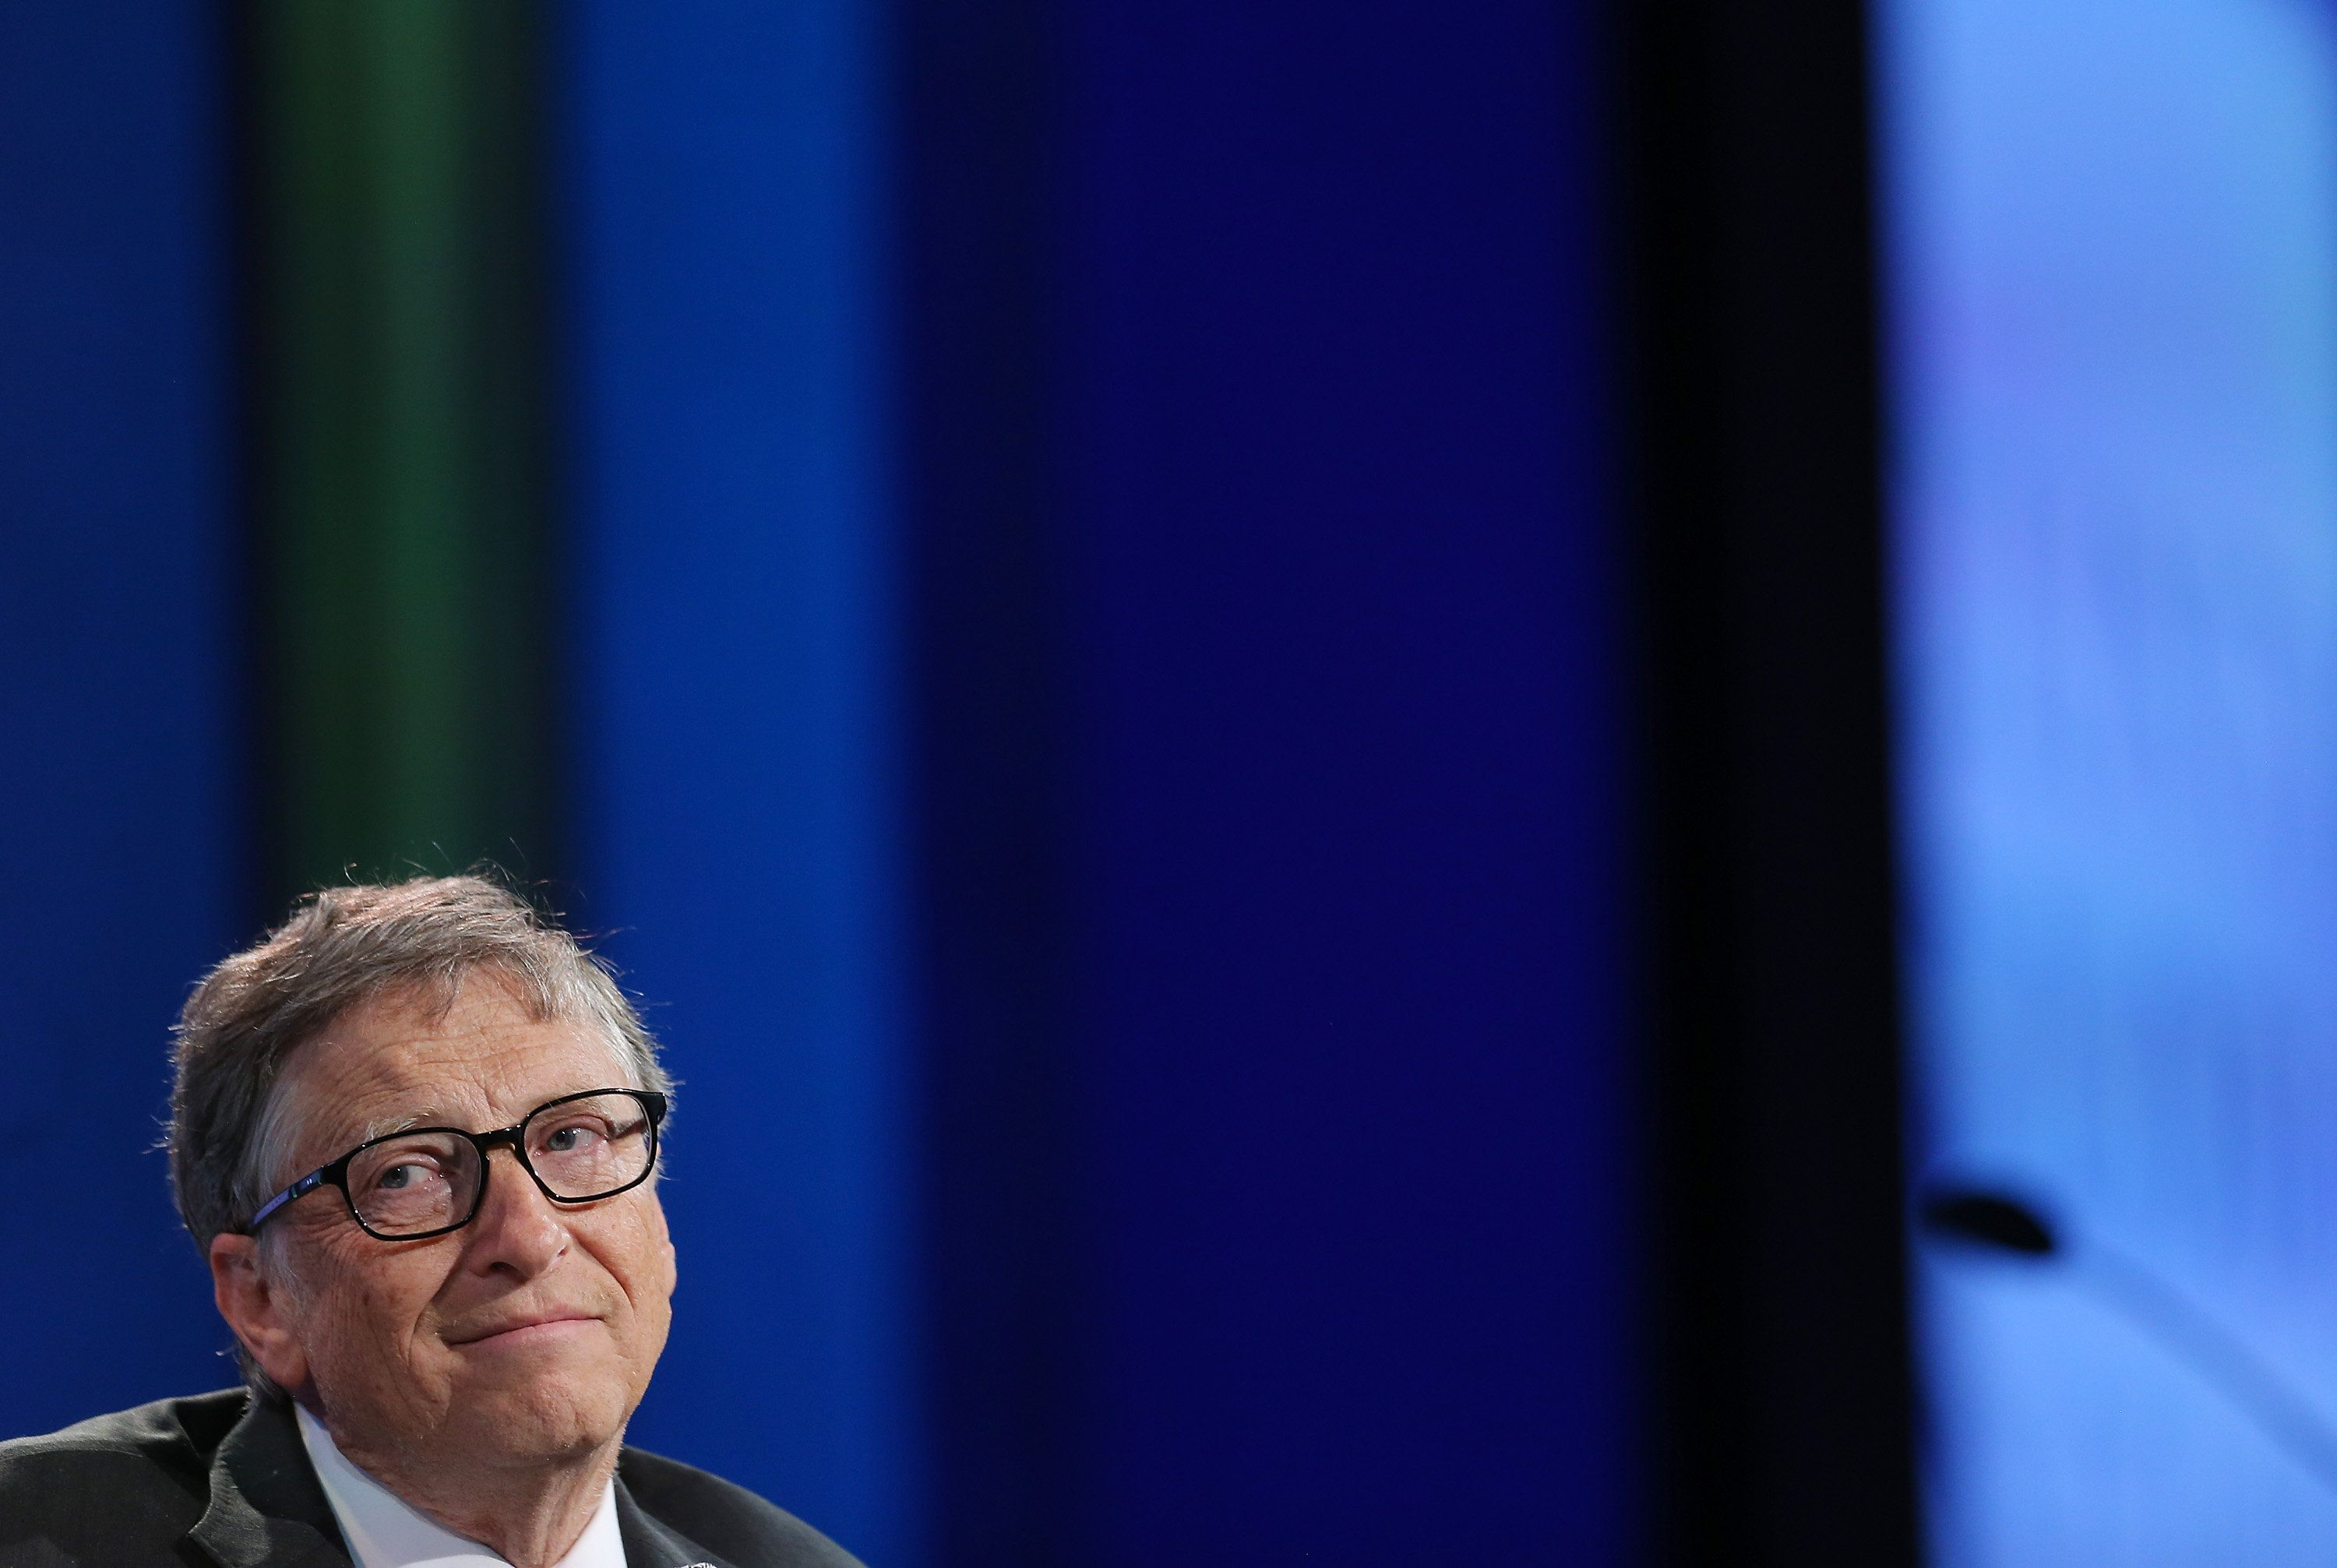 The vast majority of Silicon Valley has sided with Apple, but Microsoft co-founder Bill Gates is taking a more neutral positi